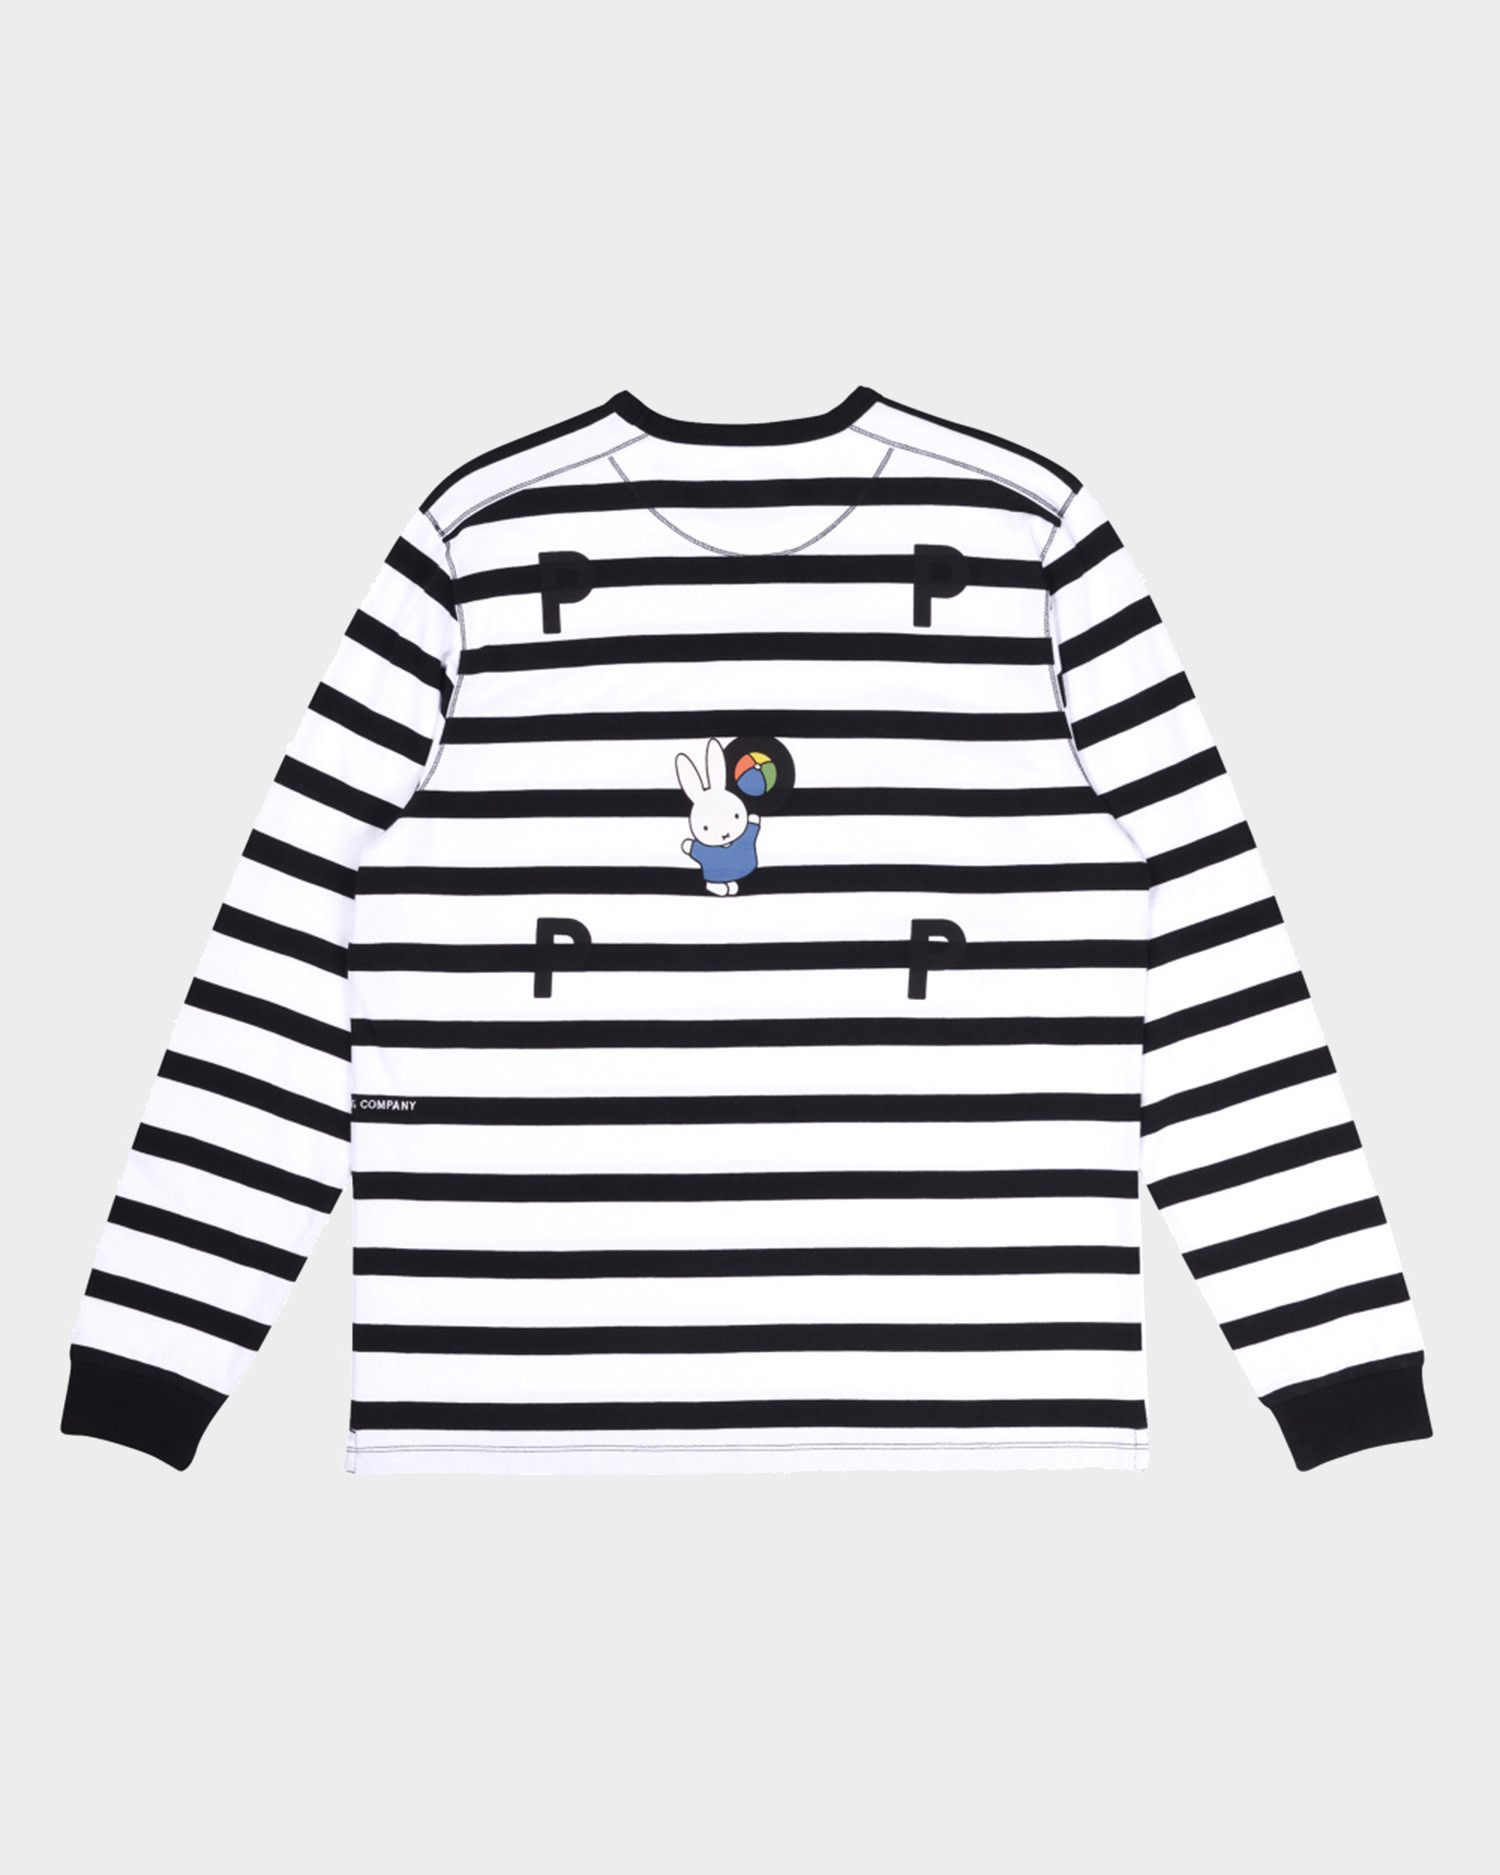 Pop Trading Co X Miffy Striped Longsleeve T-Shirt Black/White